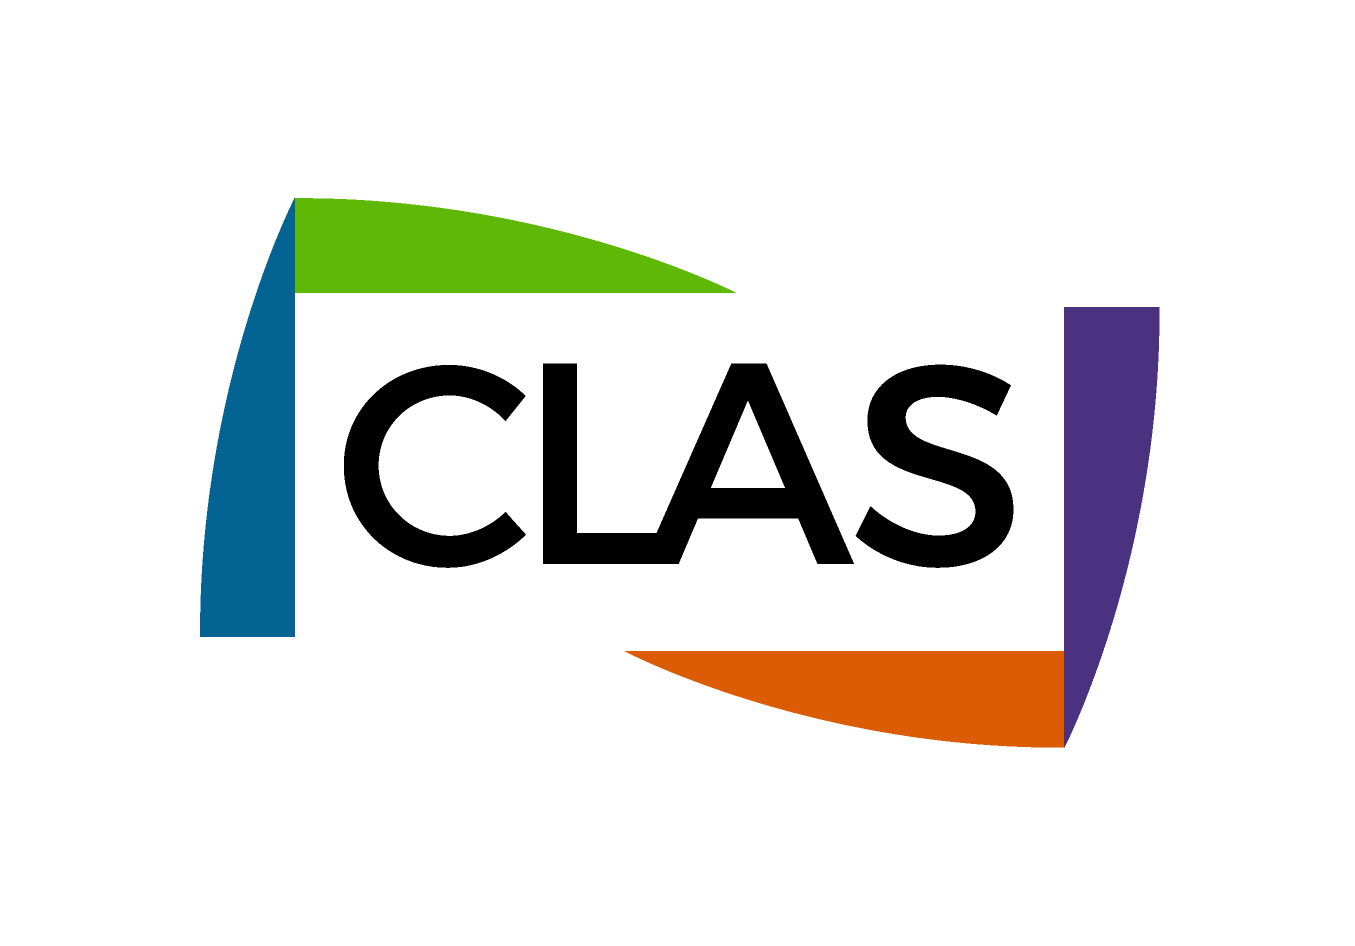 clas-logo-primary-full-colour-simple.png